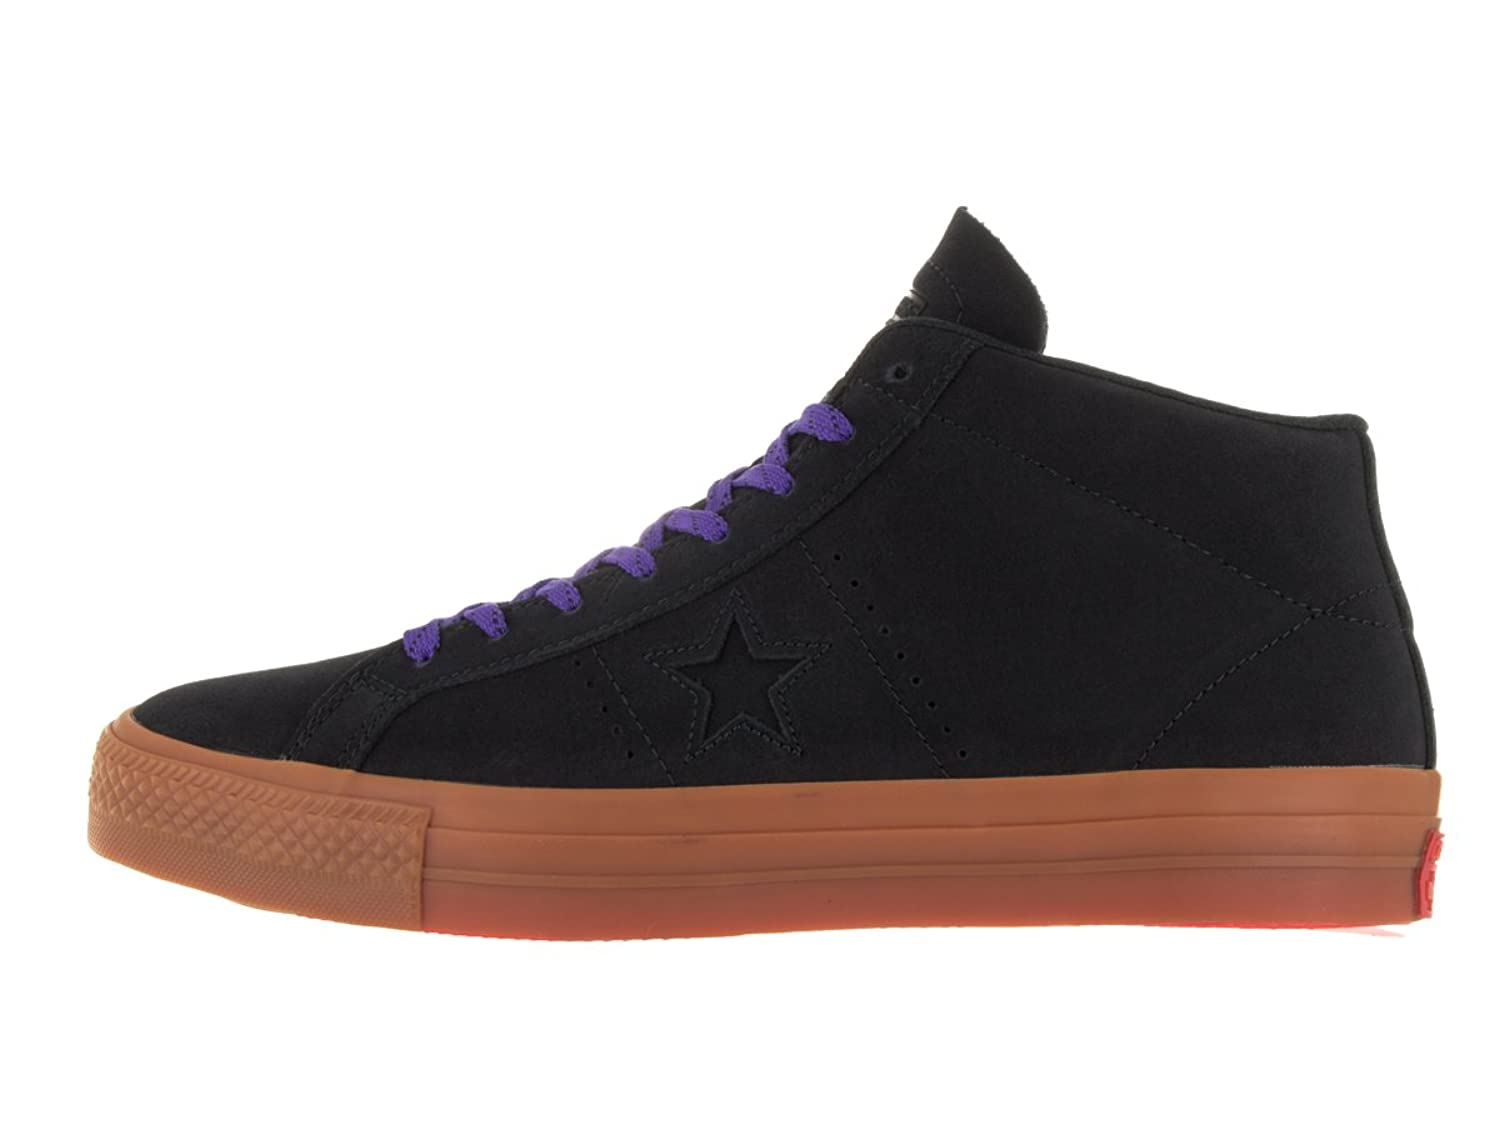 902380d1966 coupon code for converse one star pro mid 15e7d 13500